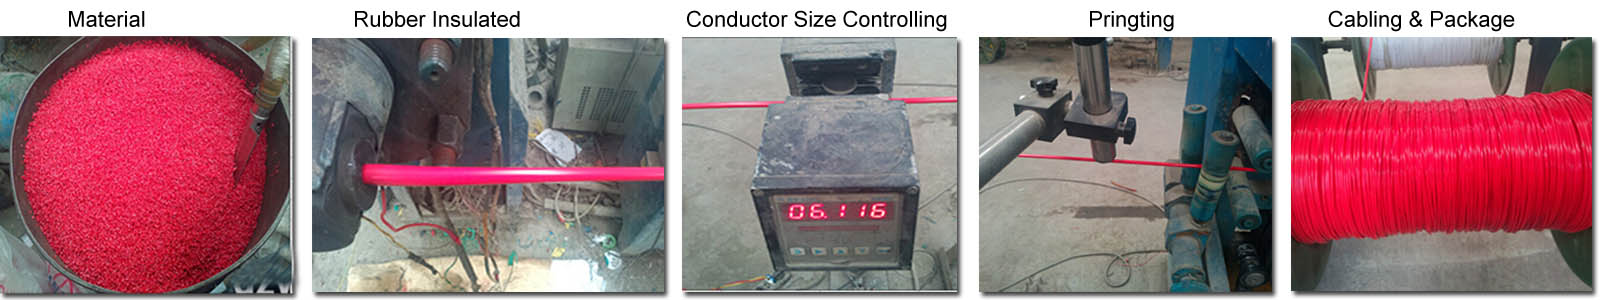 rubber cable production process